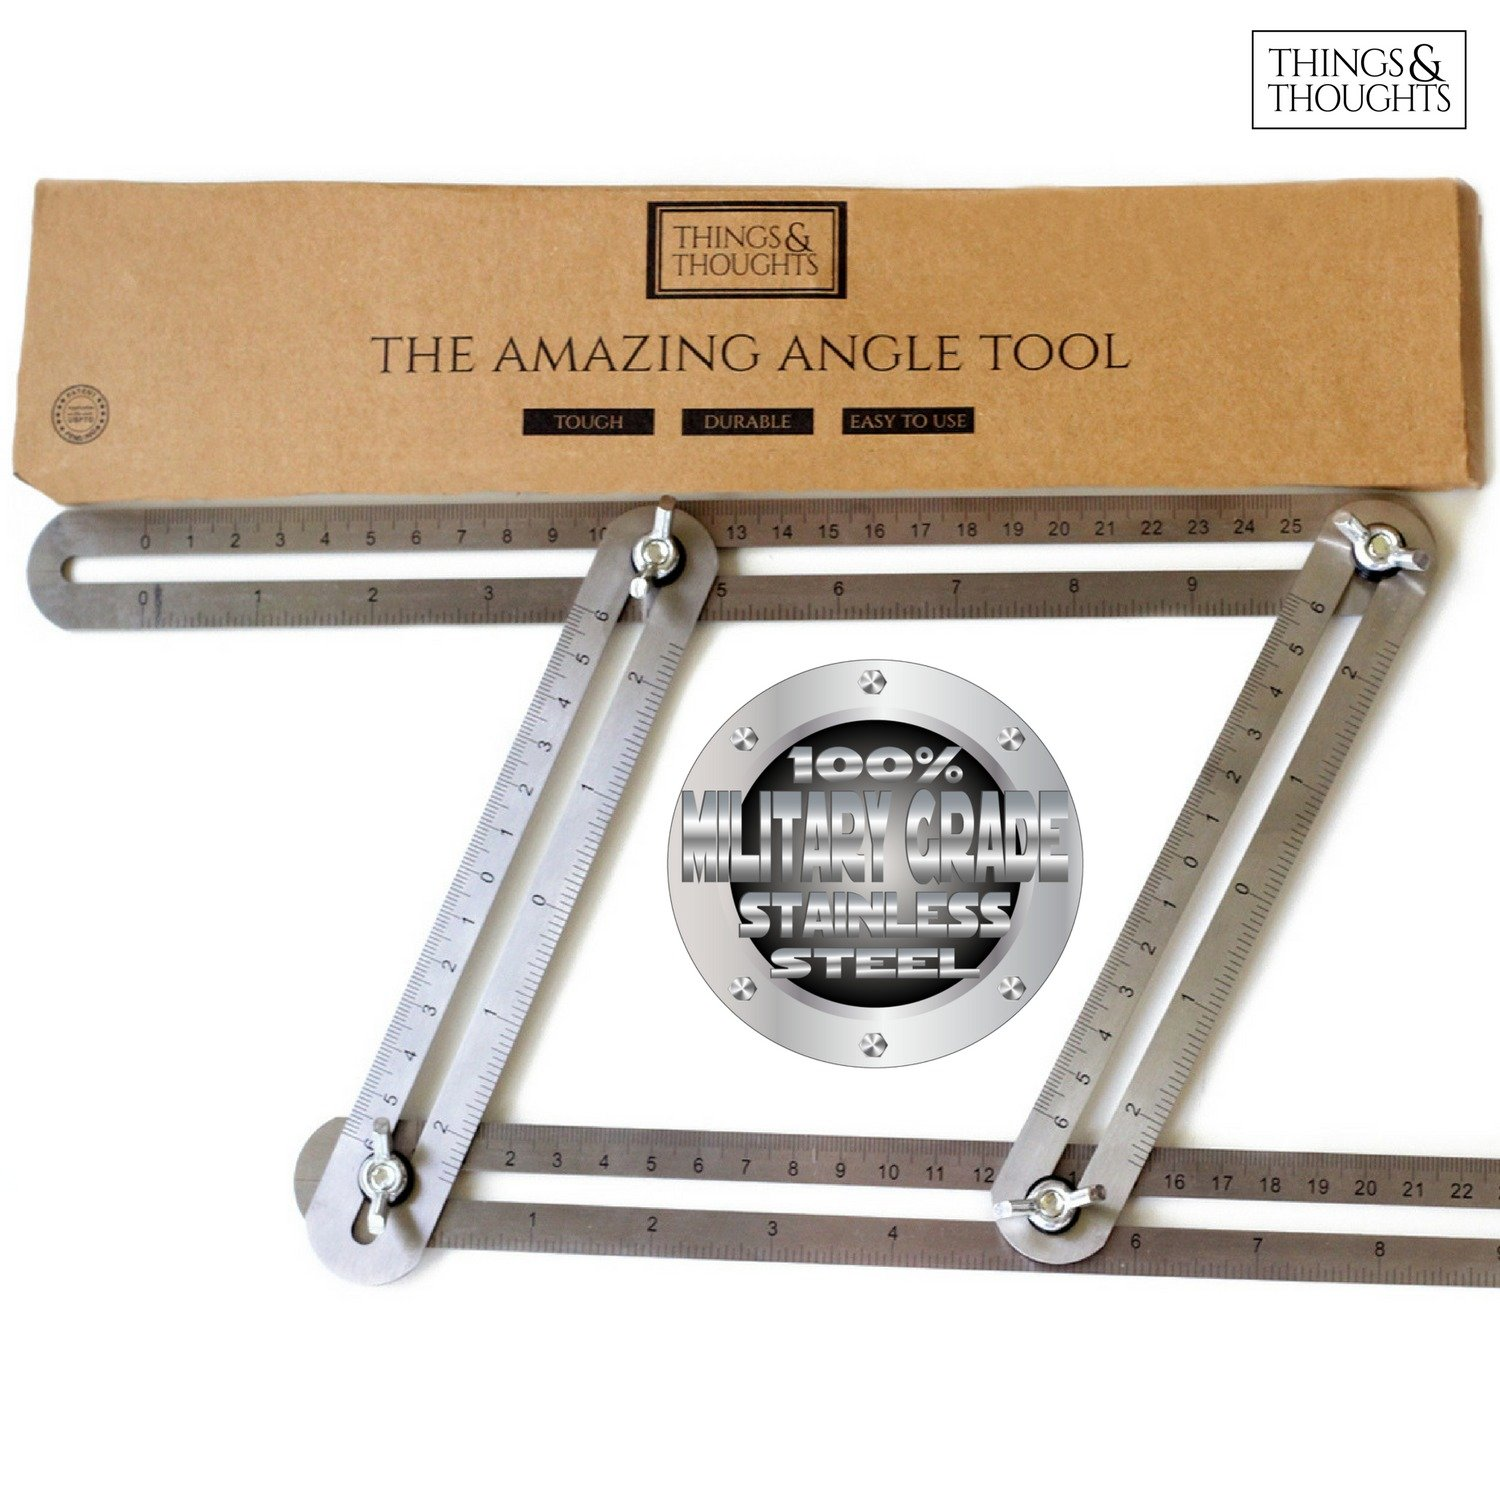 The Amazing Angle Tool | Find & Measure Angles for Professional Quality Results When Cutting & Laying Tile, Laminate, Brick, Pavers, & Roof Rafters ~ Military Grade Stainless Steel